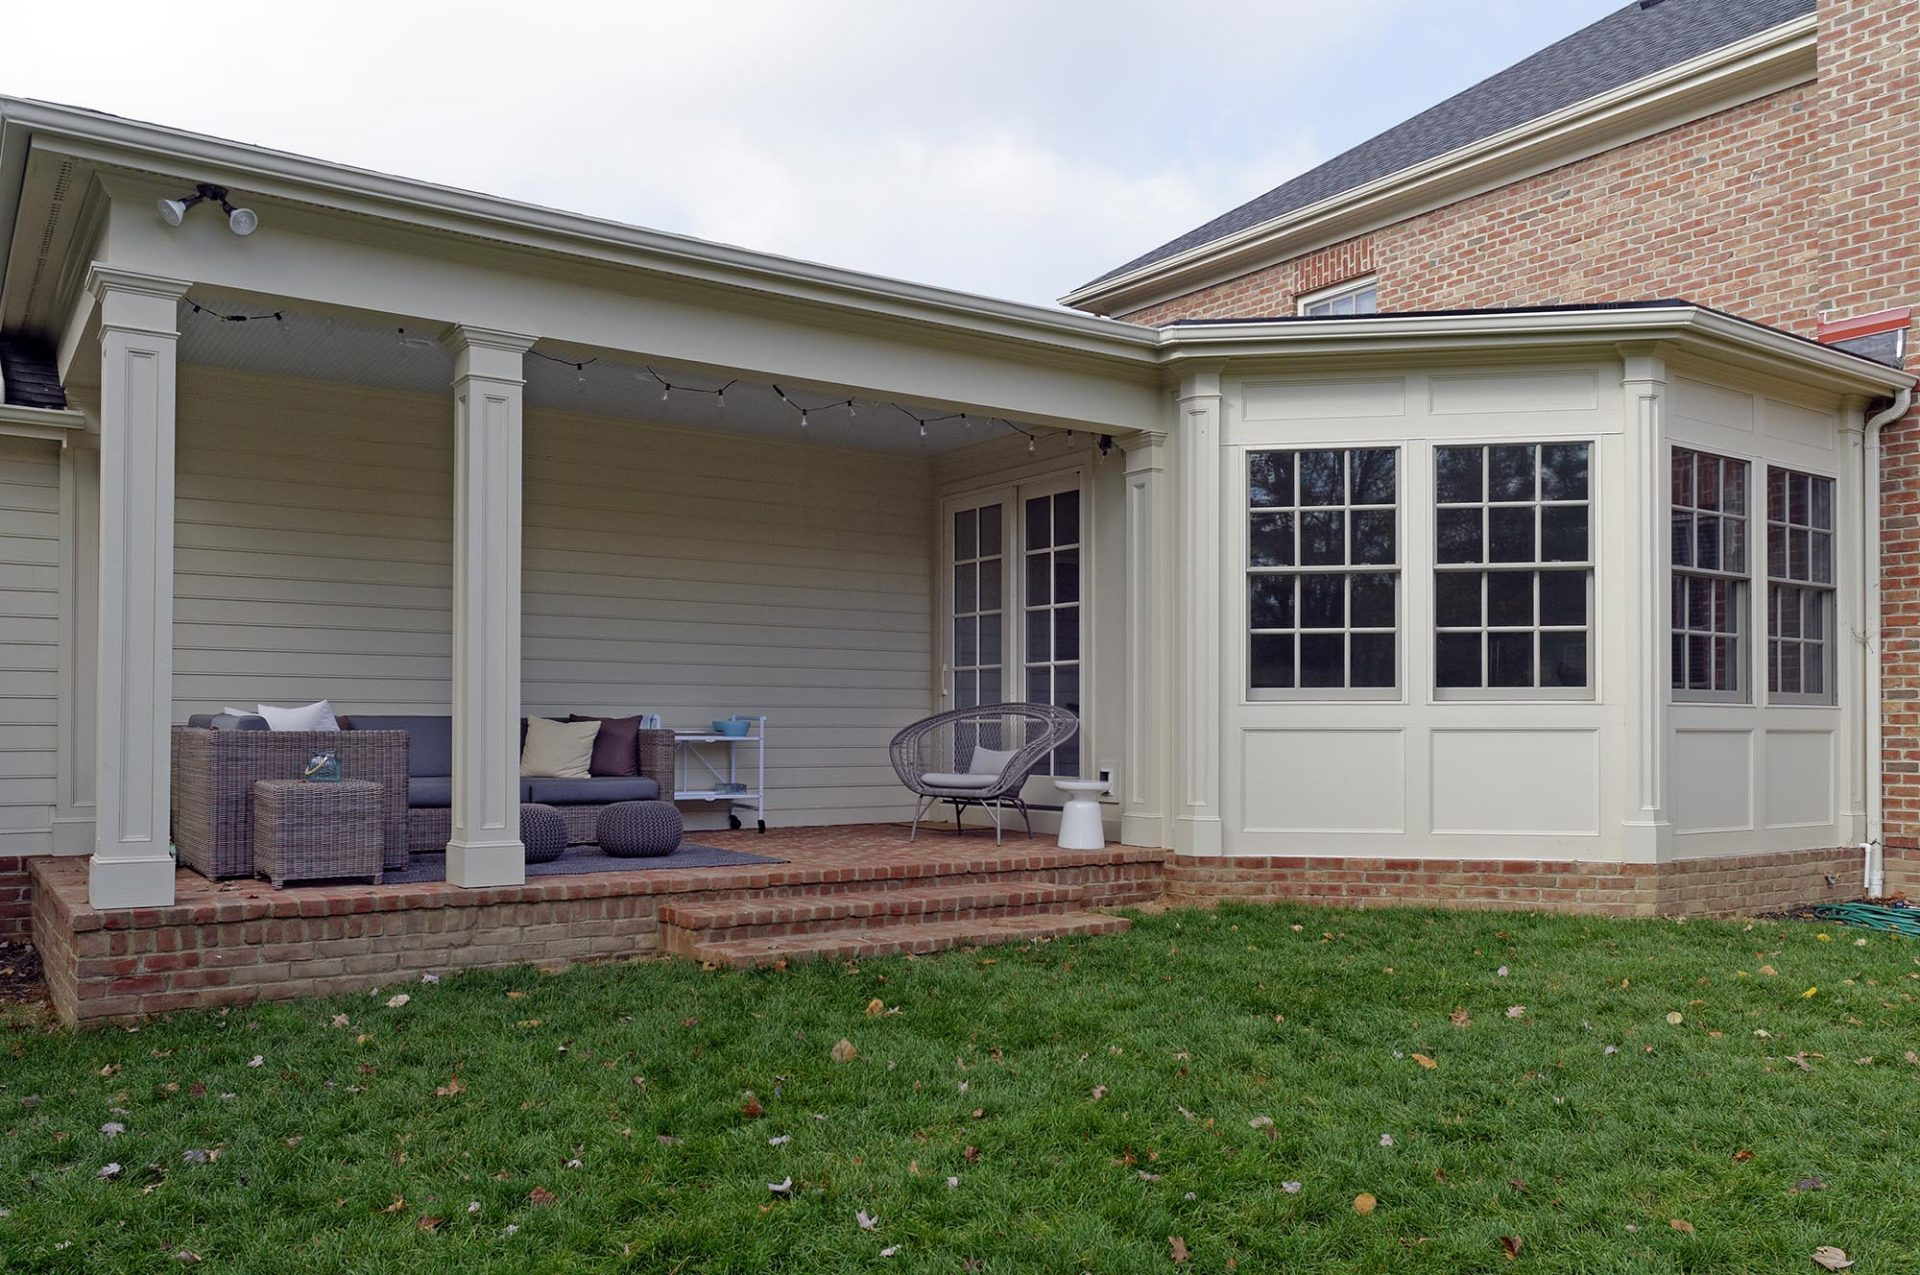 Room addition, sunroom, New Albany, Dave Fox, Remodel, white brick, hardwood floors, brick porch